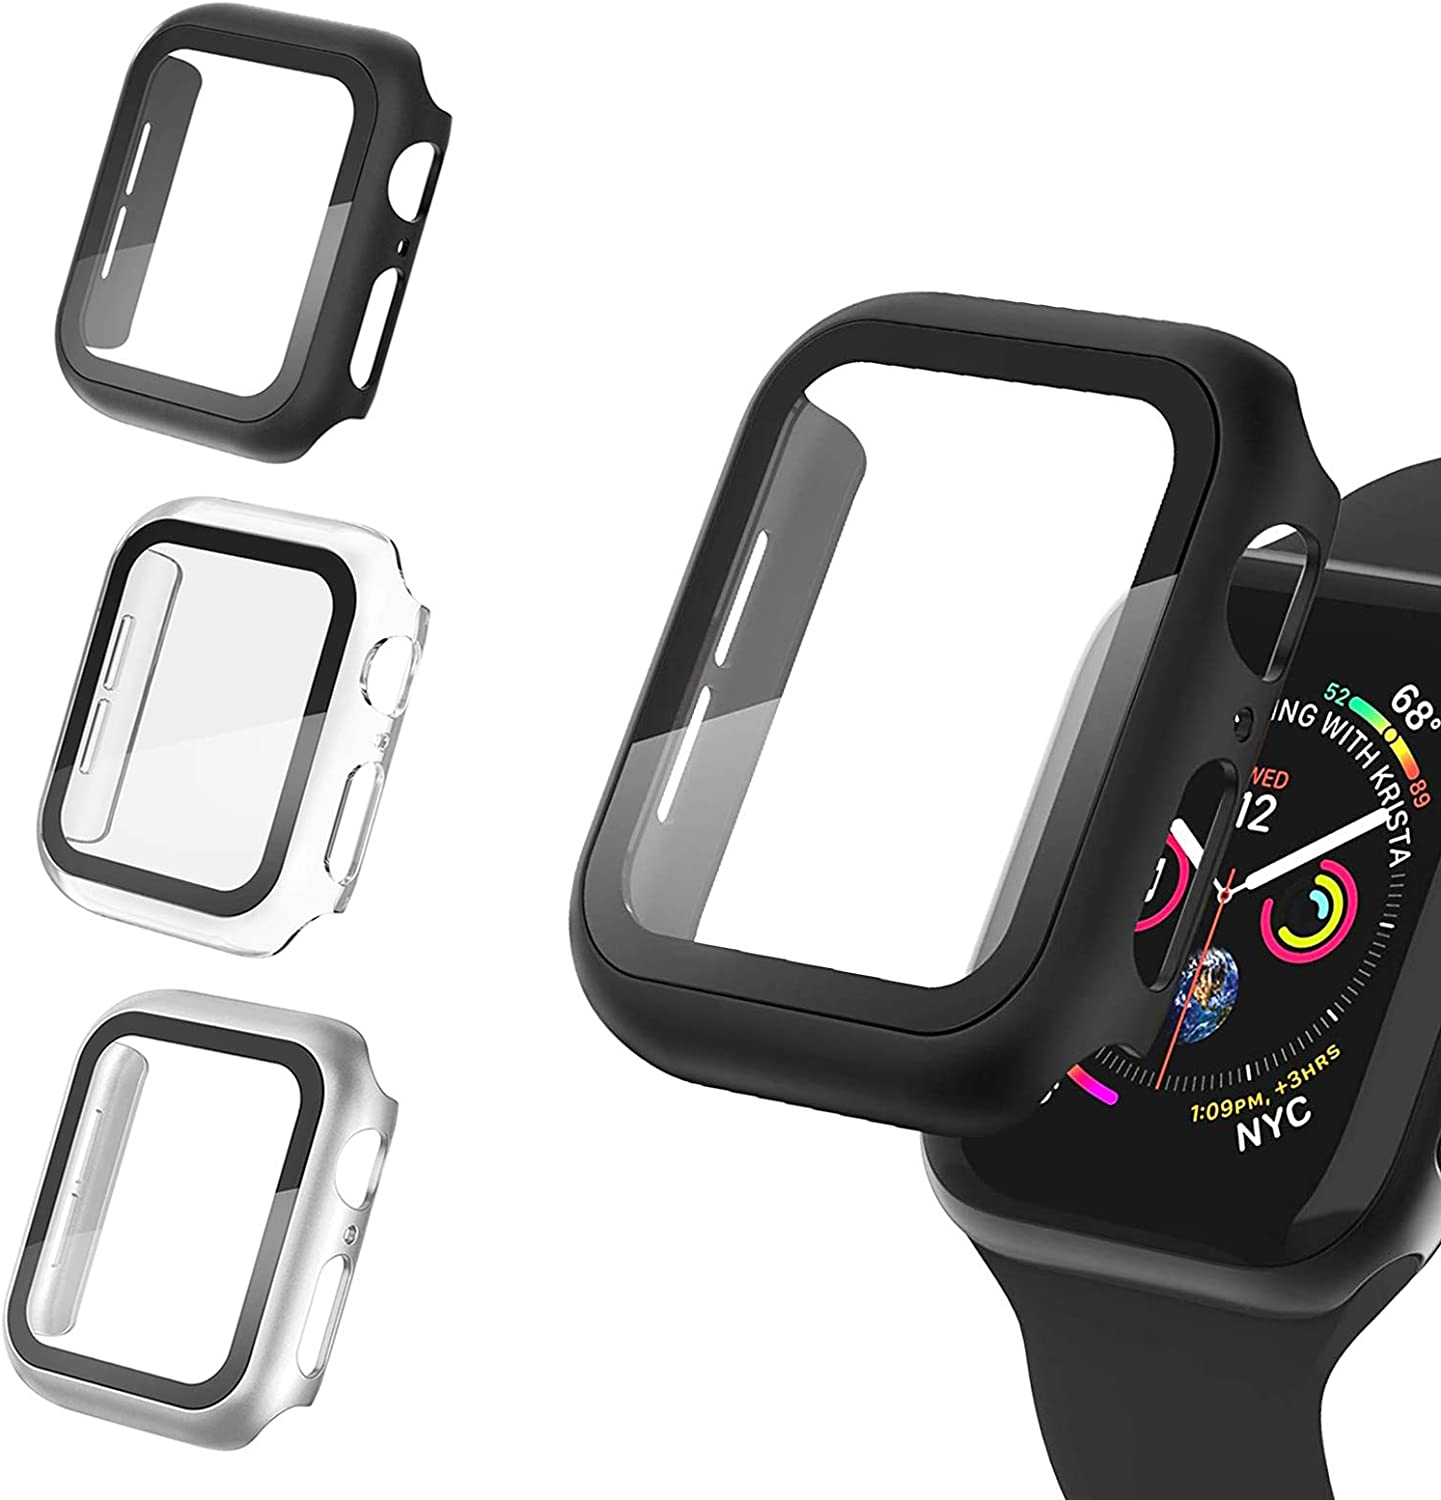 4 Pack Apple Watch Case 42mm Series 3/2/1 with Termpered Glass Screen Protector,Ultra-Thin Hard PC Shockproof Bumper Full Coverage Scratch-Resistant Protective Cover for Men Women iWatch